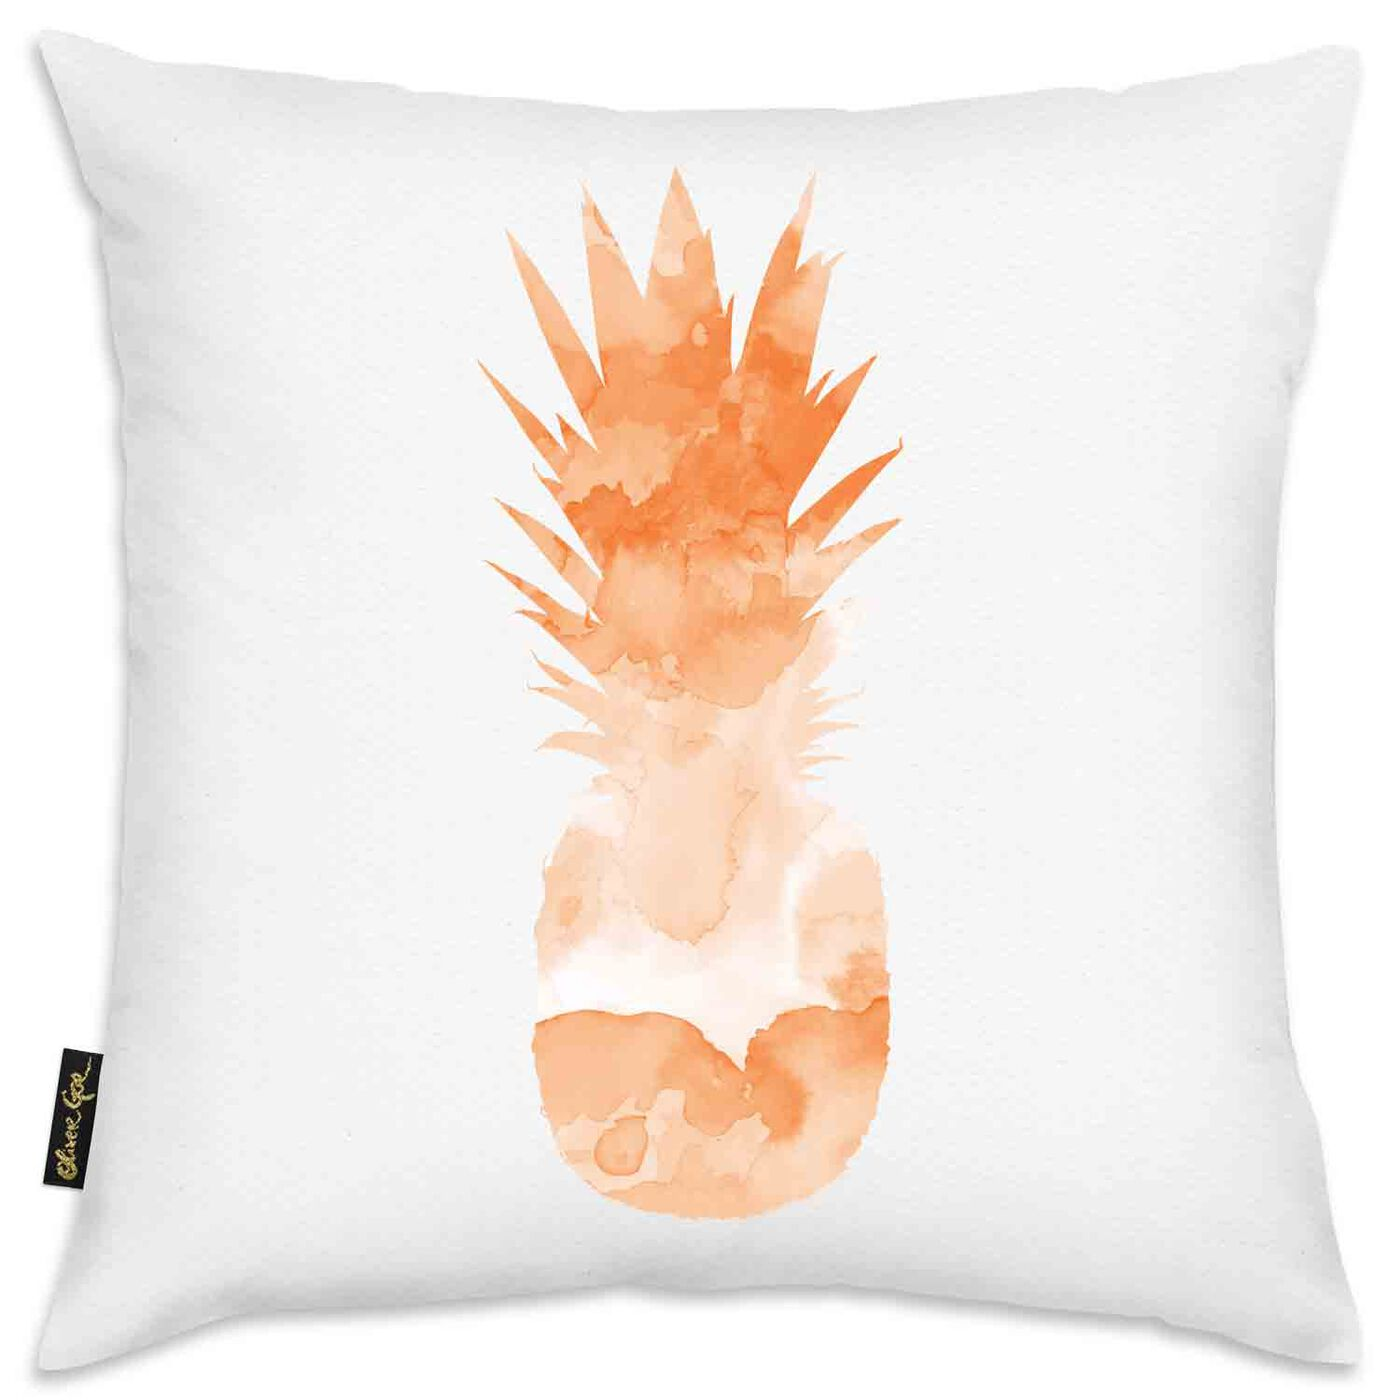 Cocktail Pineapple Pillow